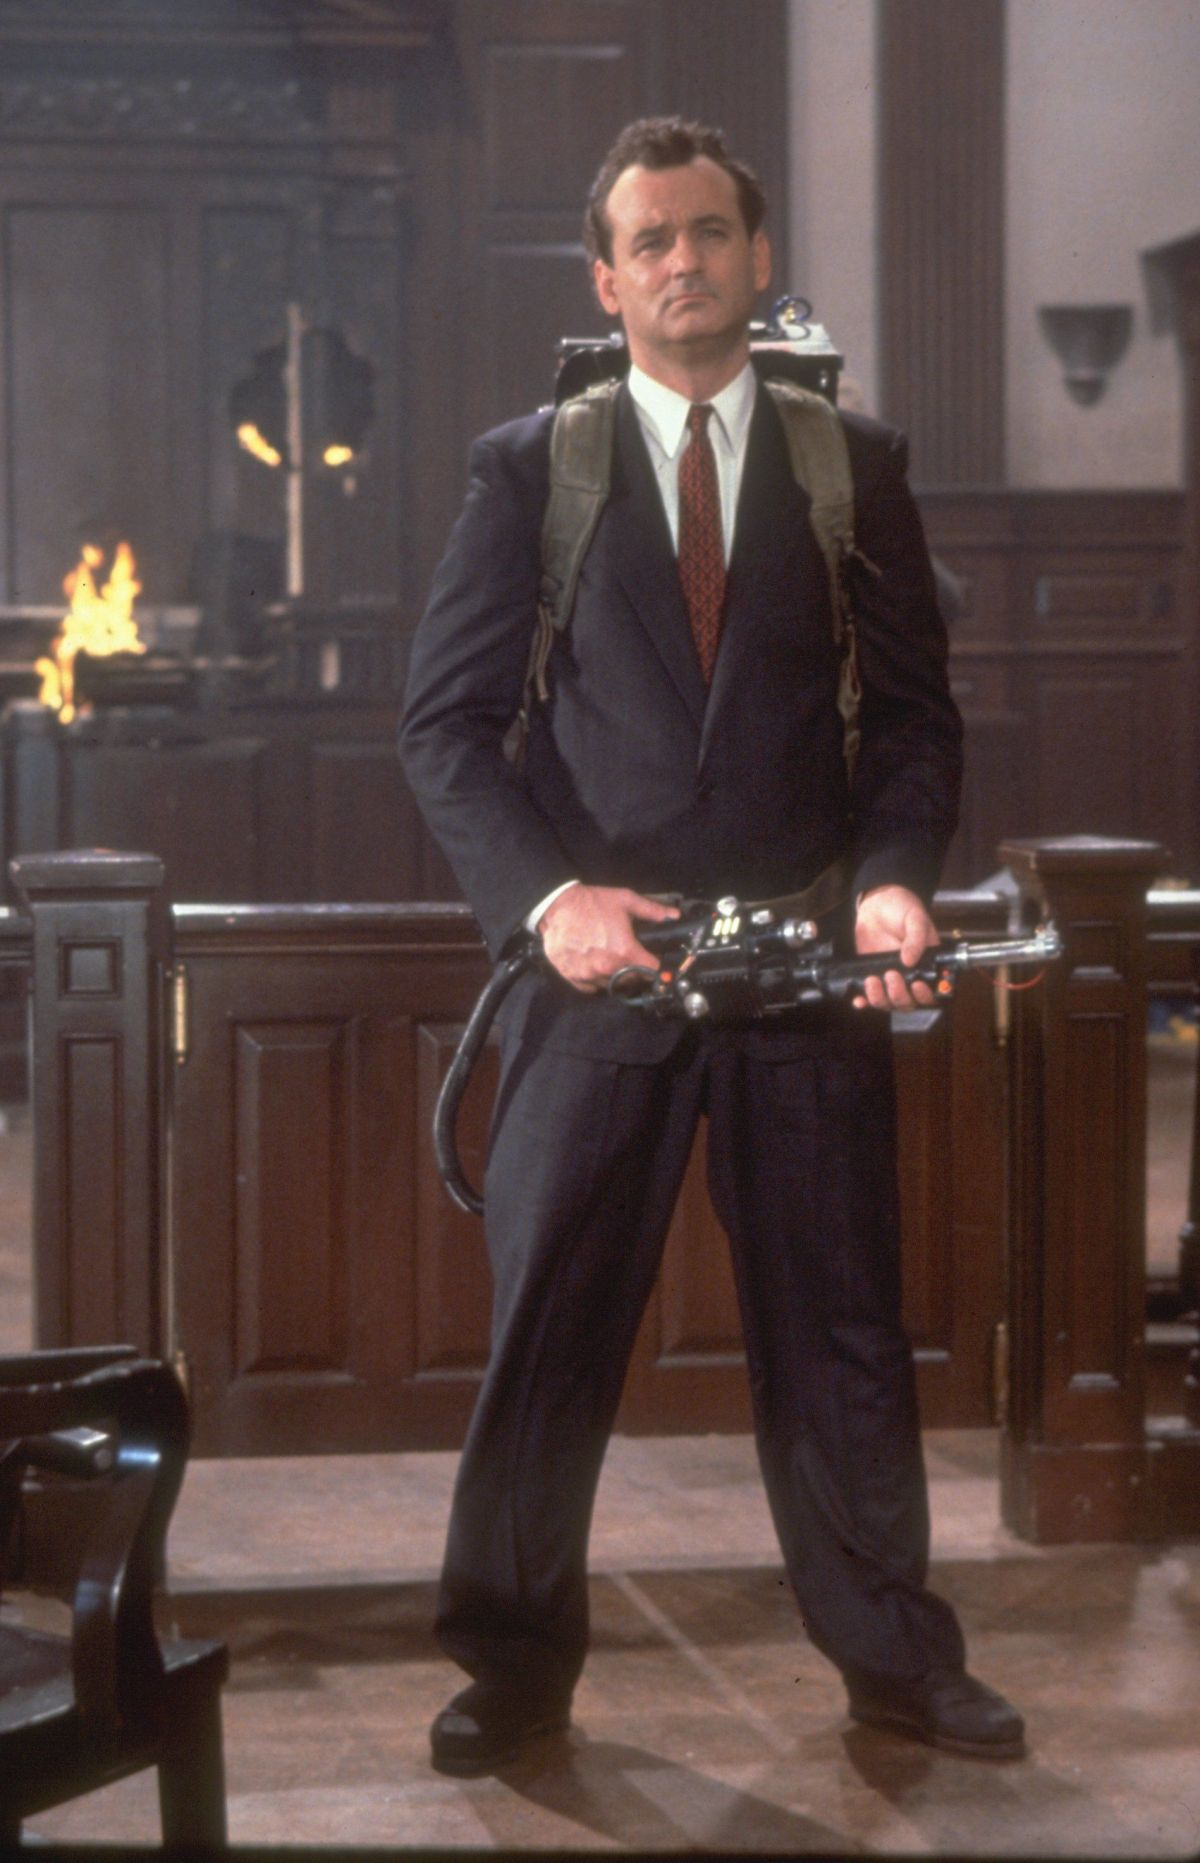 Bill Murray in character in Ghostbusters